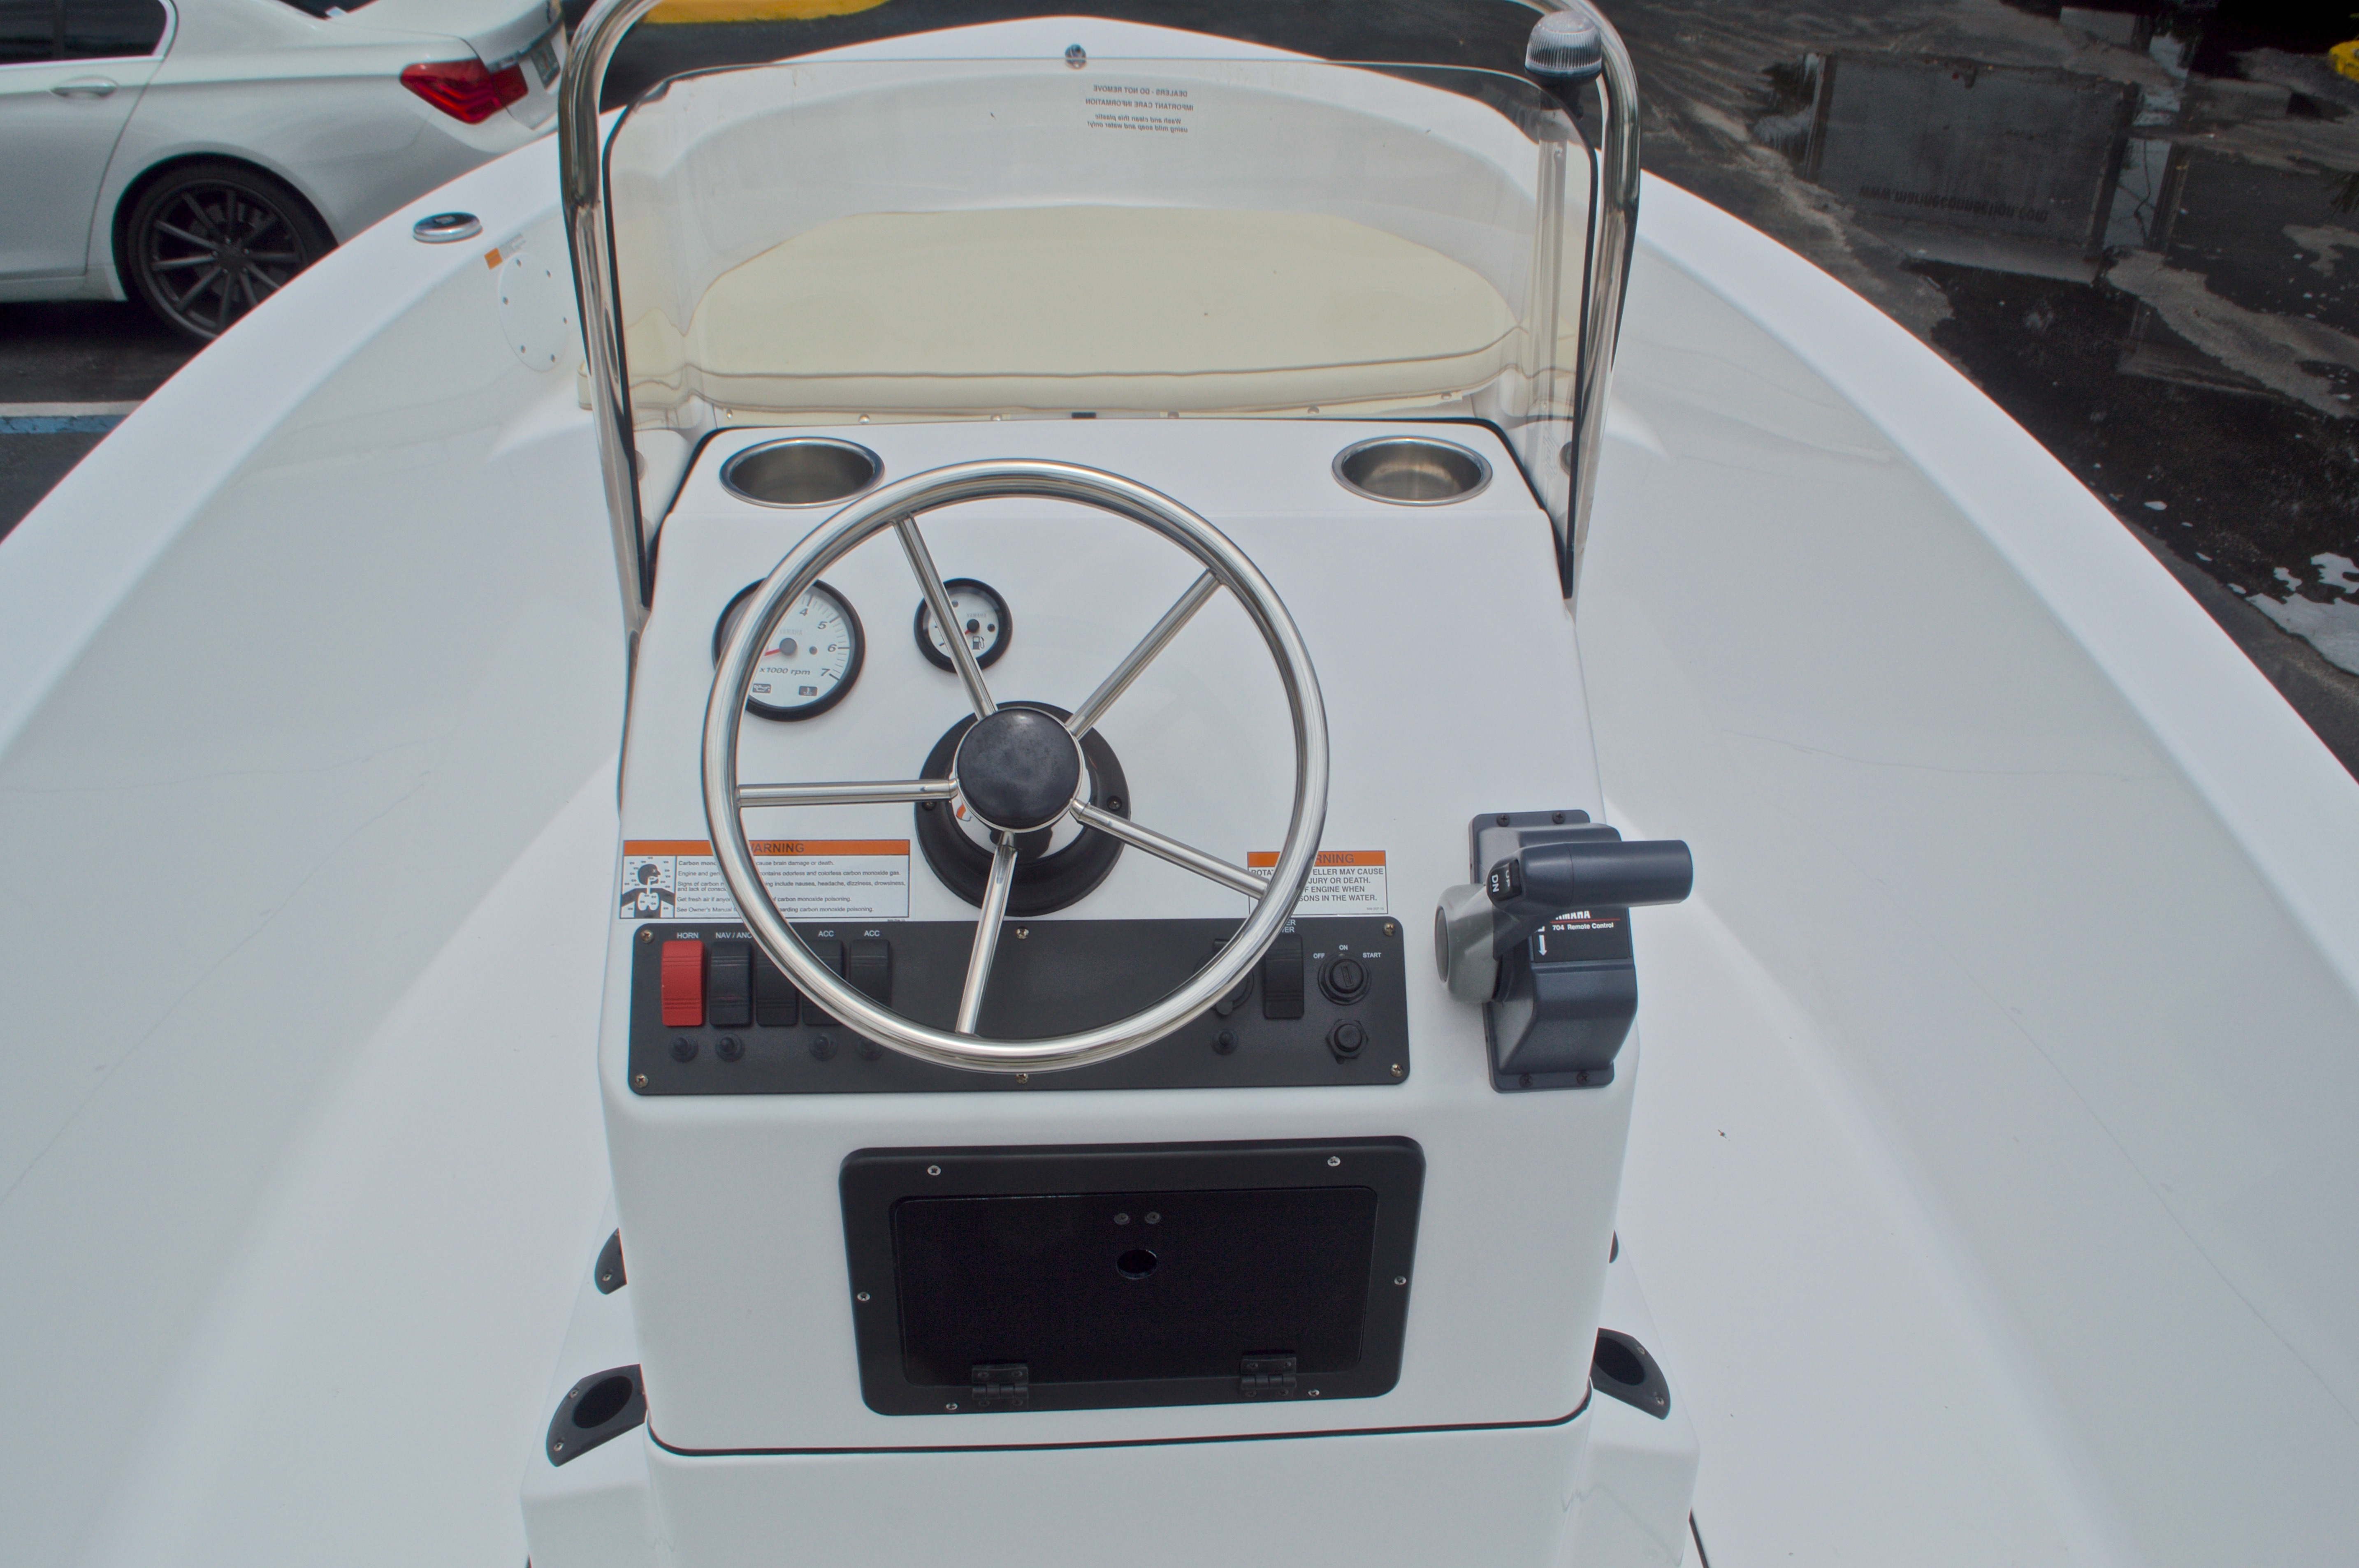 Thumbnail 22 for New 2016 Sportsman 17 Island Reef boat for sale in Miami, FL